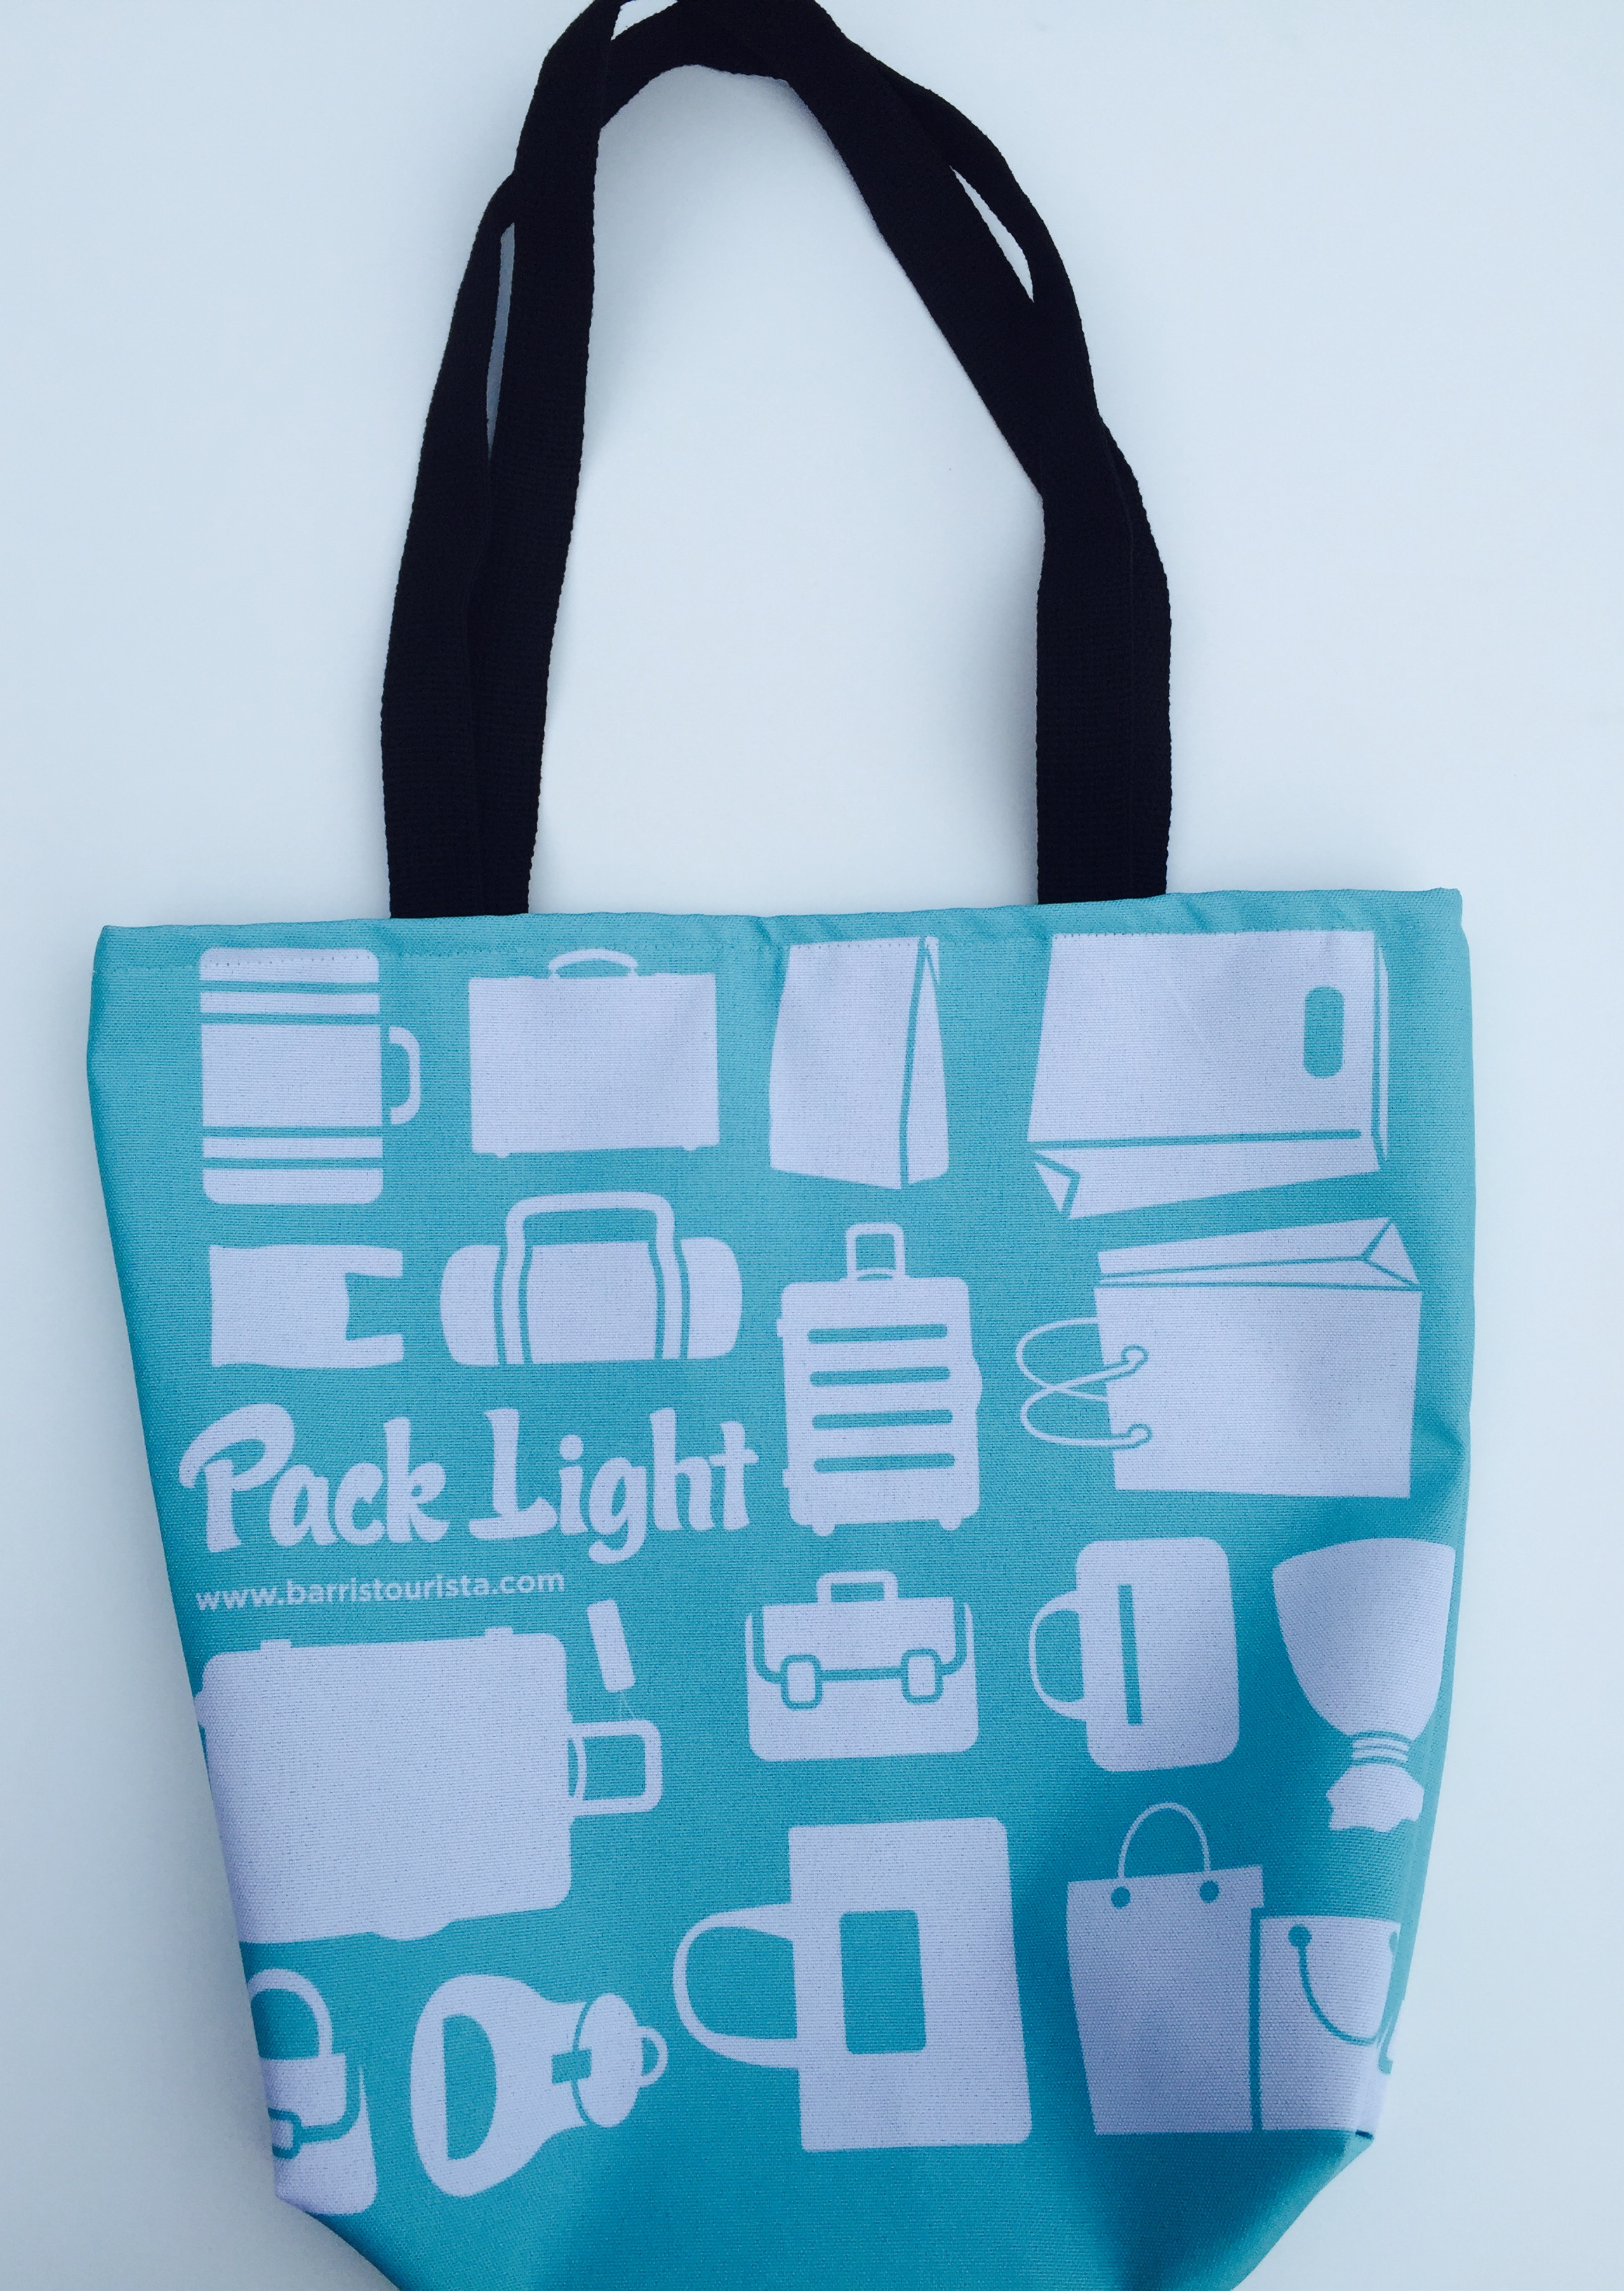 Barristourista-Pack Light Tote 2